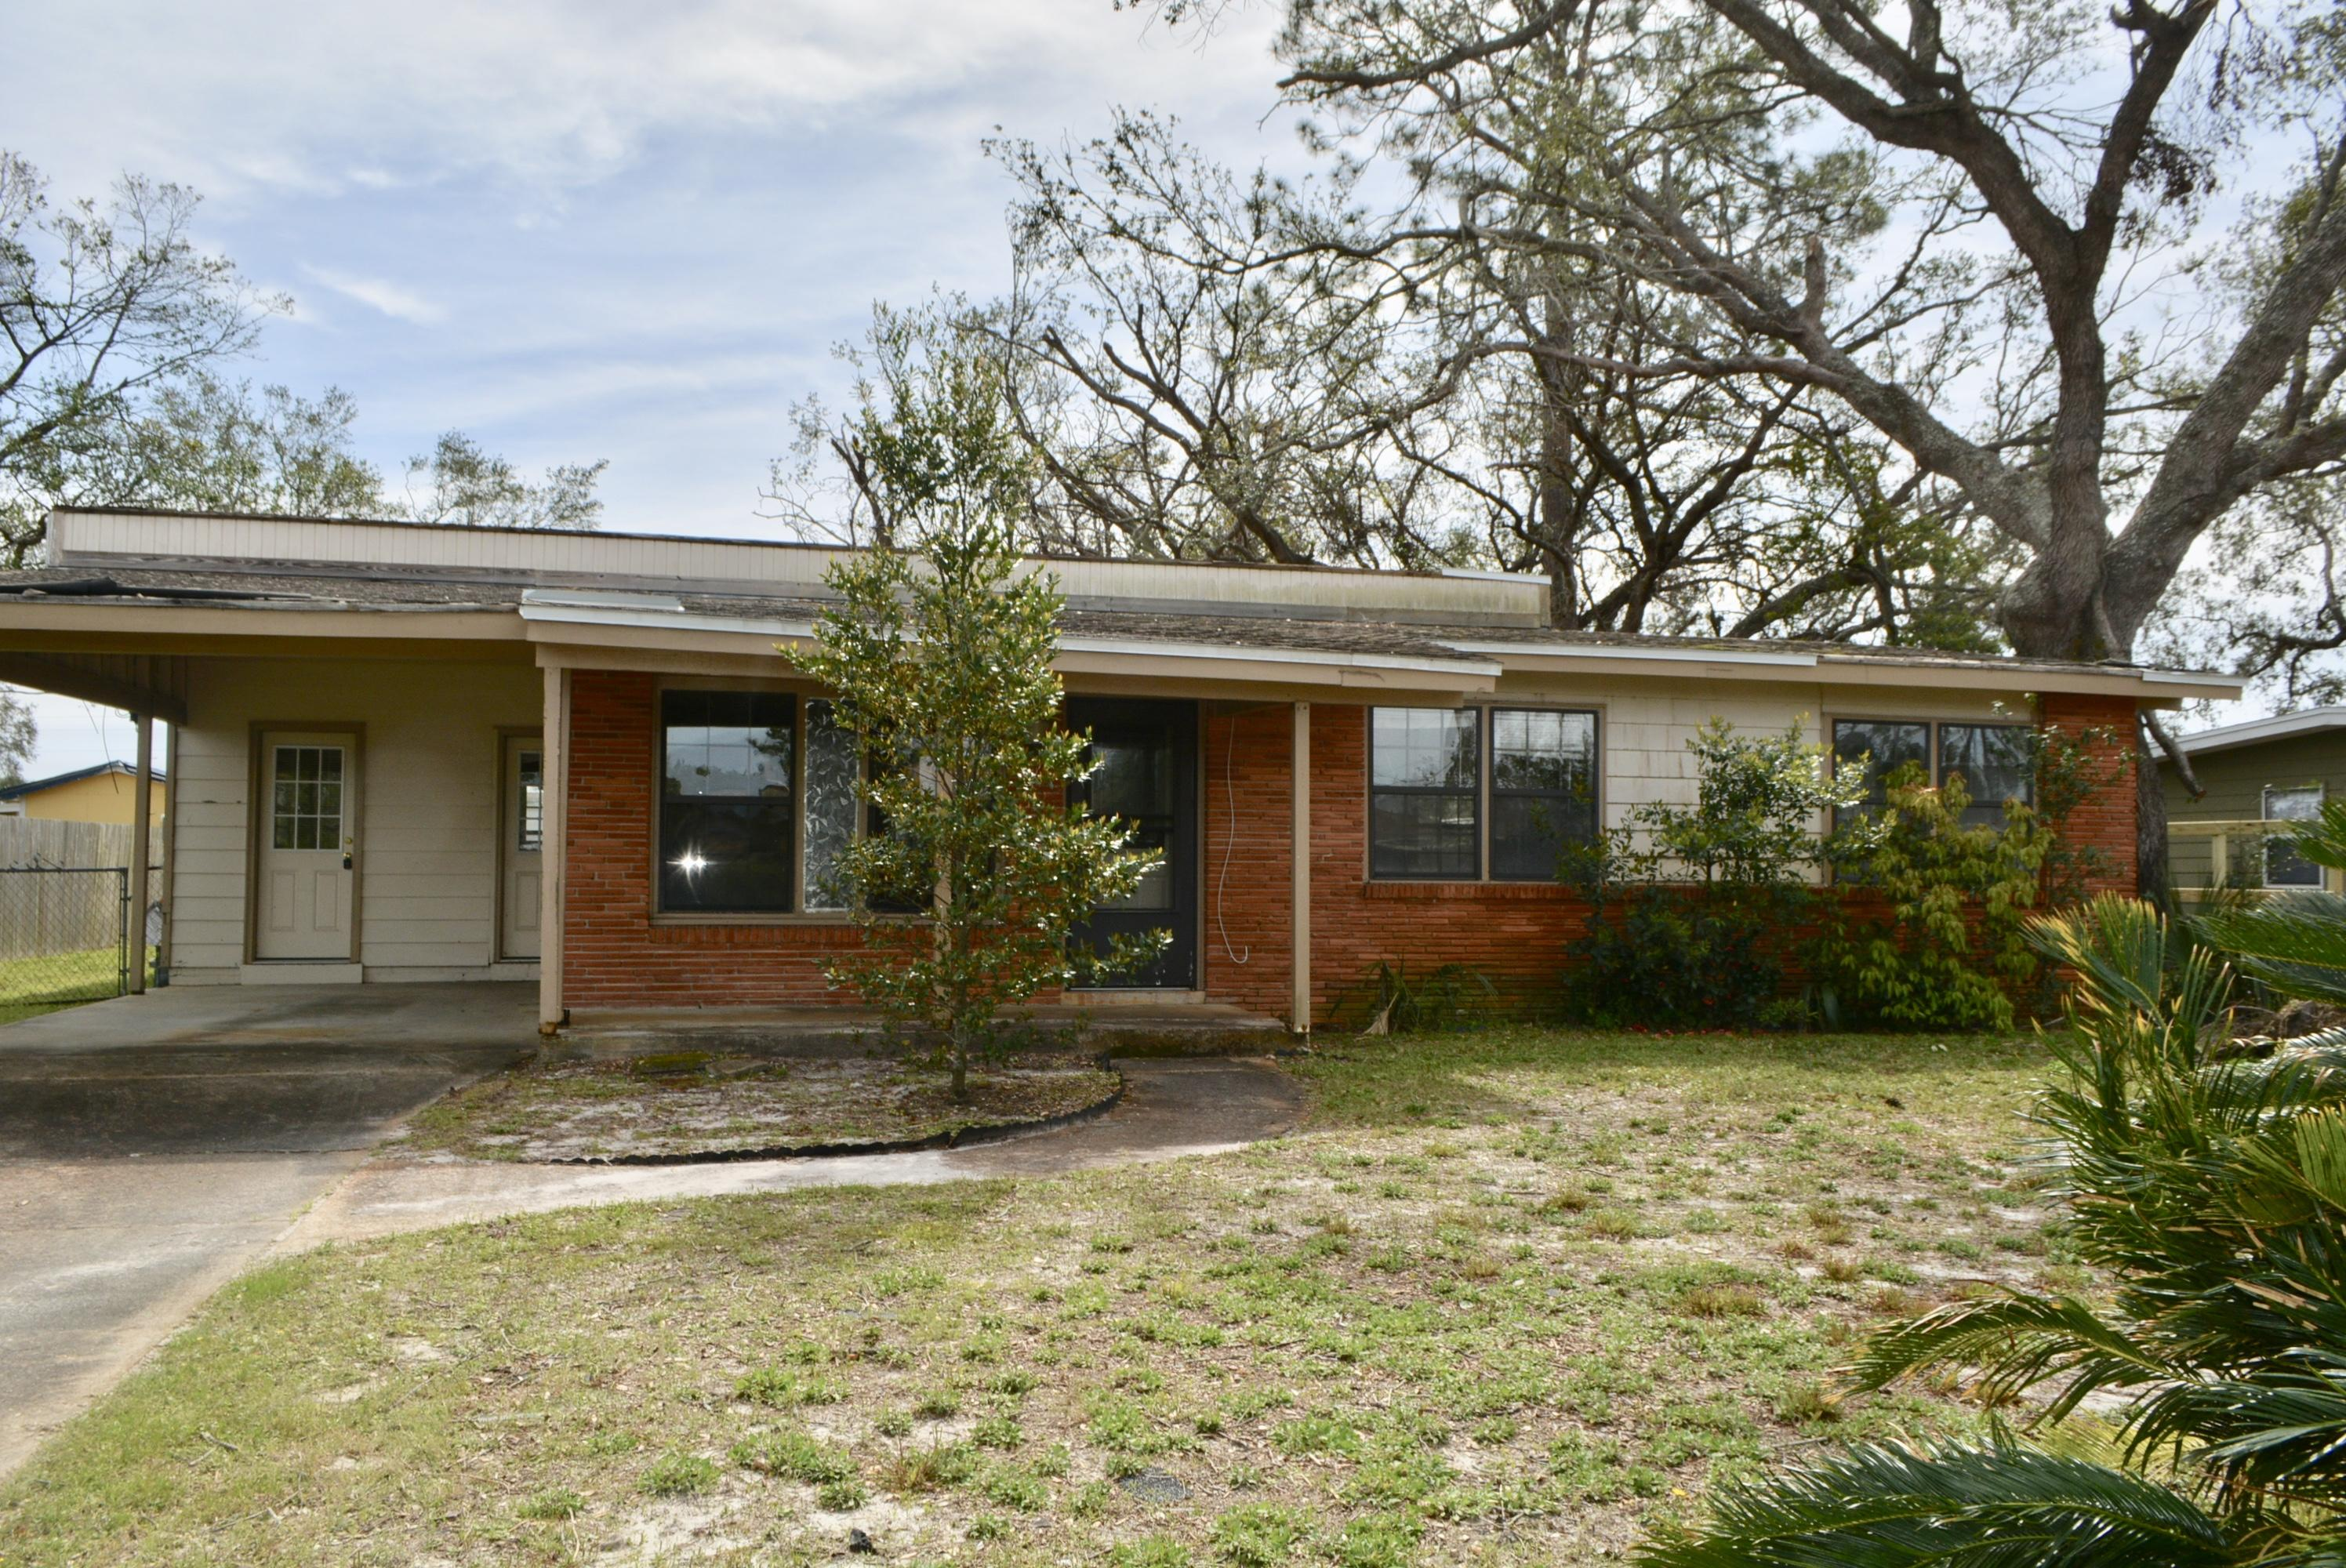 REO. 3 Bedroom 2 Bath Florida Cottage Brick home in popular Woodlawn Neighborhood! Home has a nice sized living area AND a large Bonus Room in the back of the home! Nice sized fenced lot also. Please call for more information!